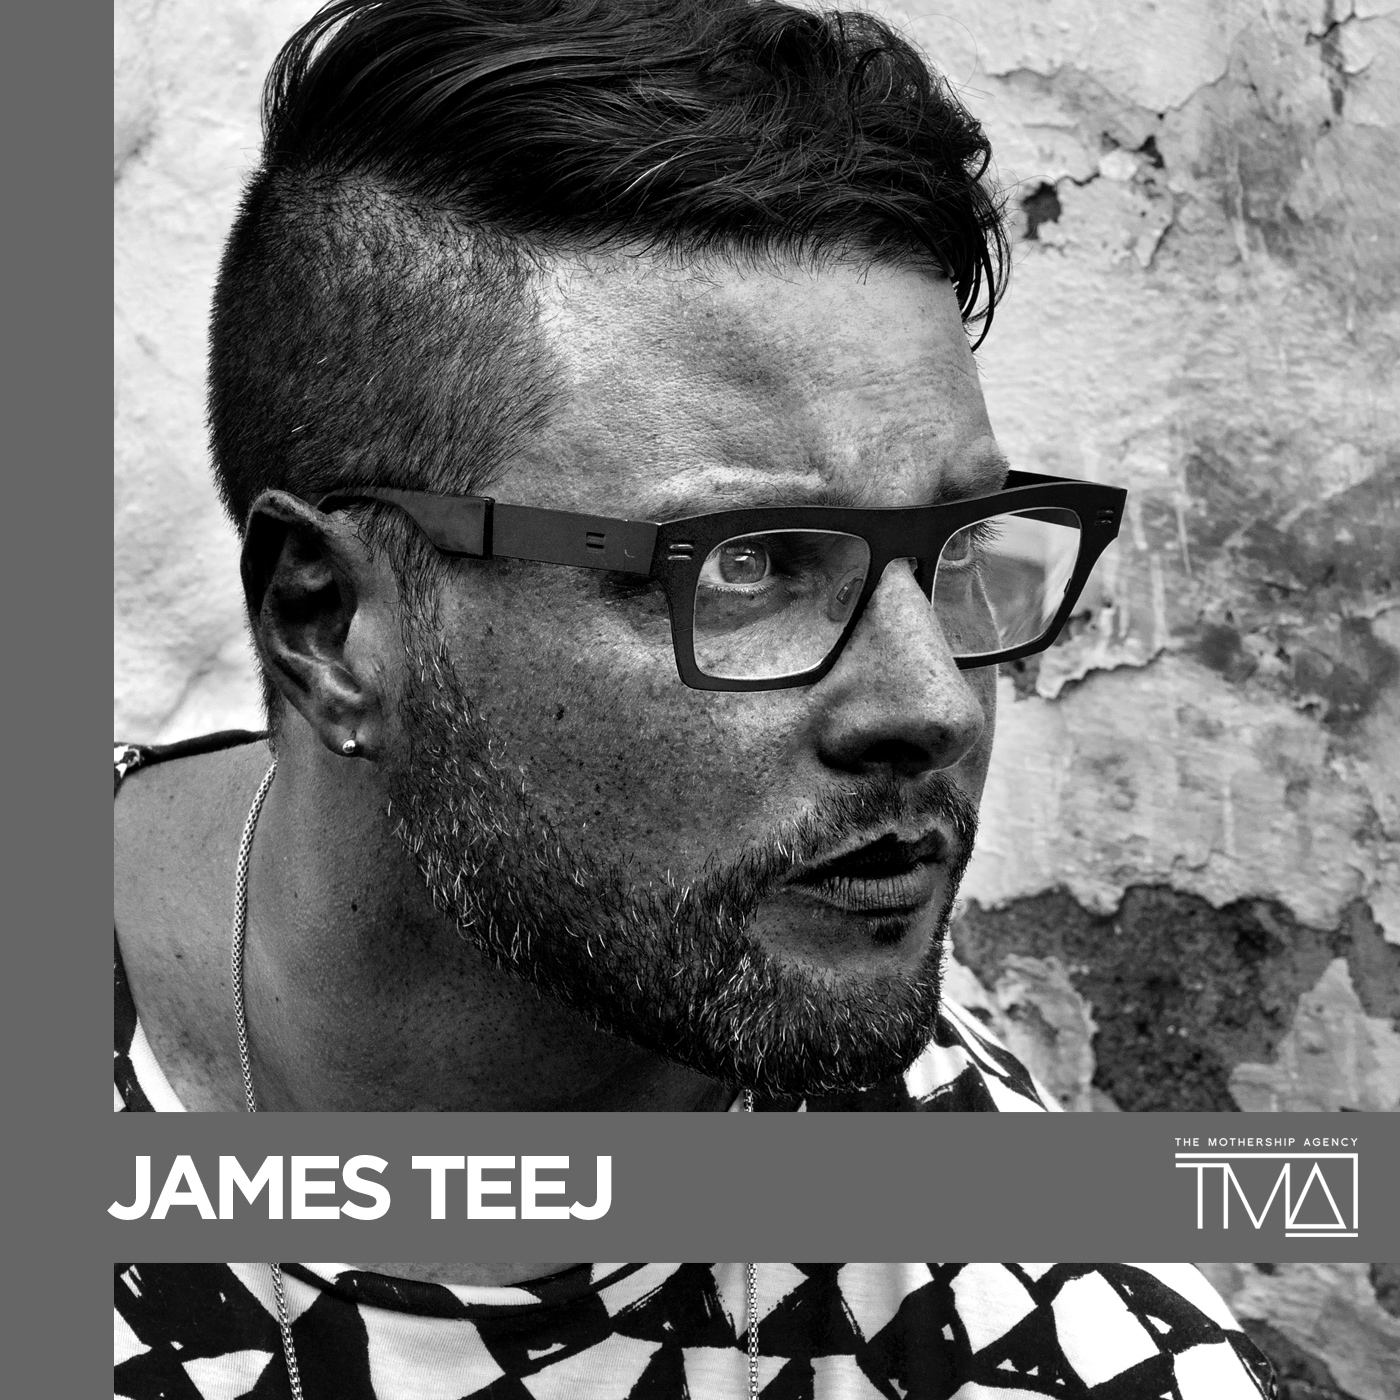 THE COLLECTIVE SERIES: TMA – James Teej